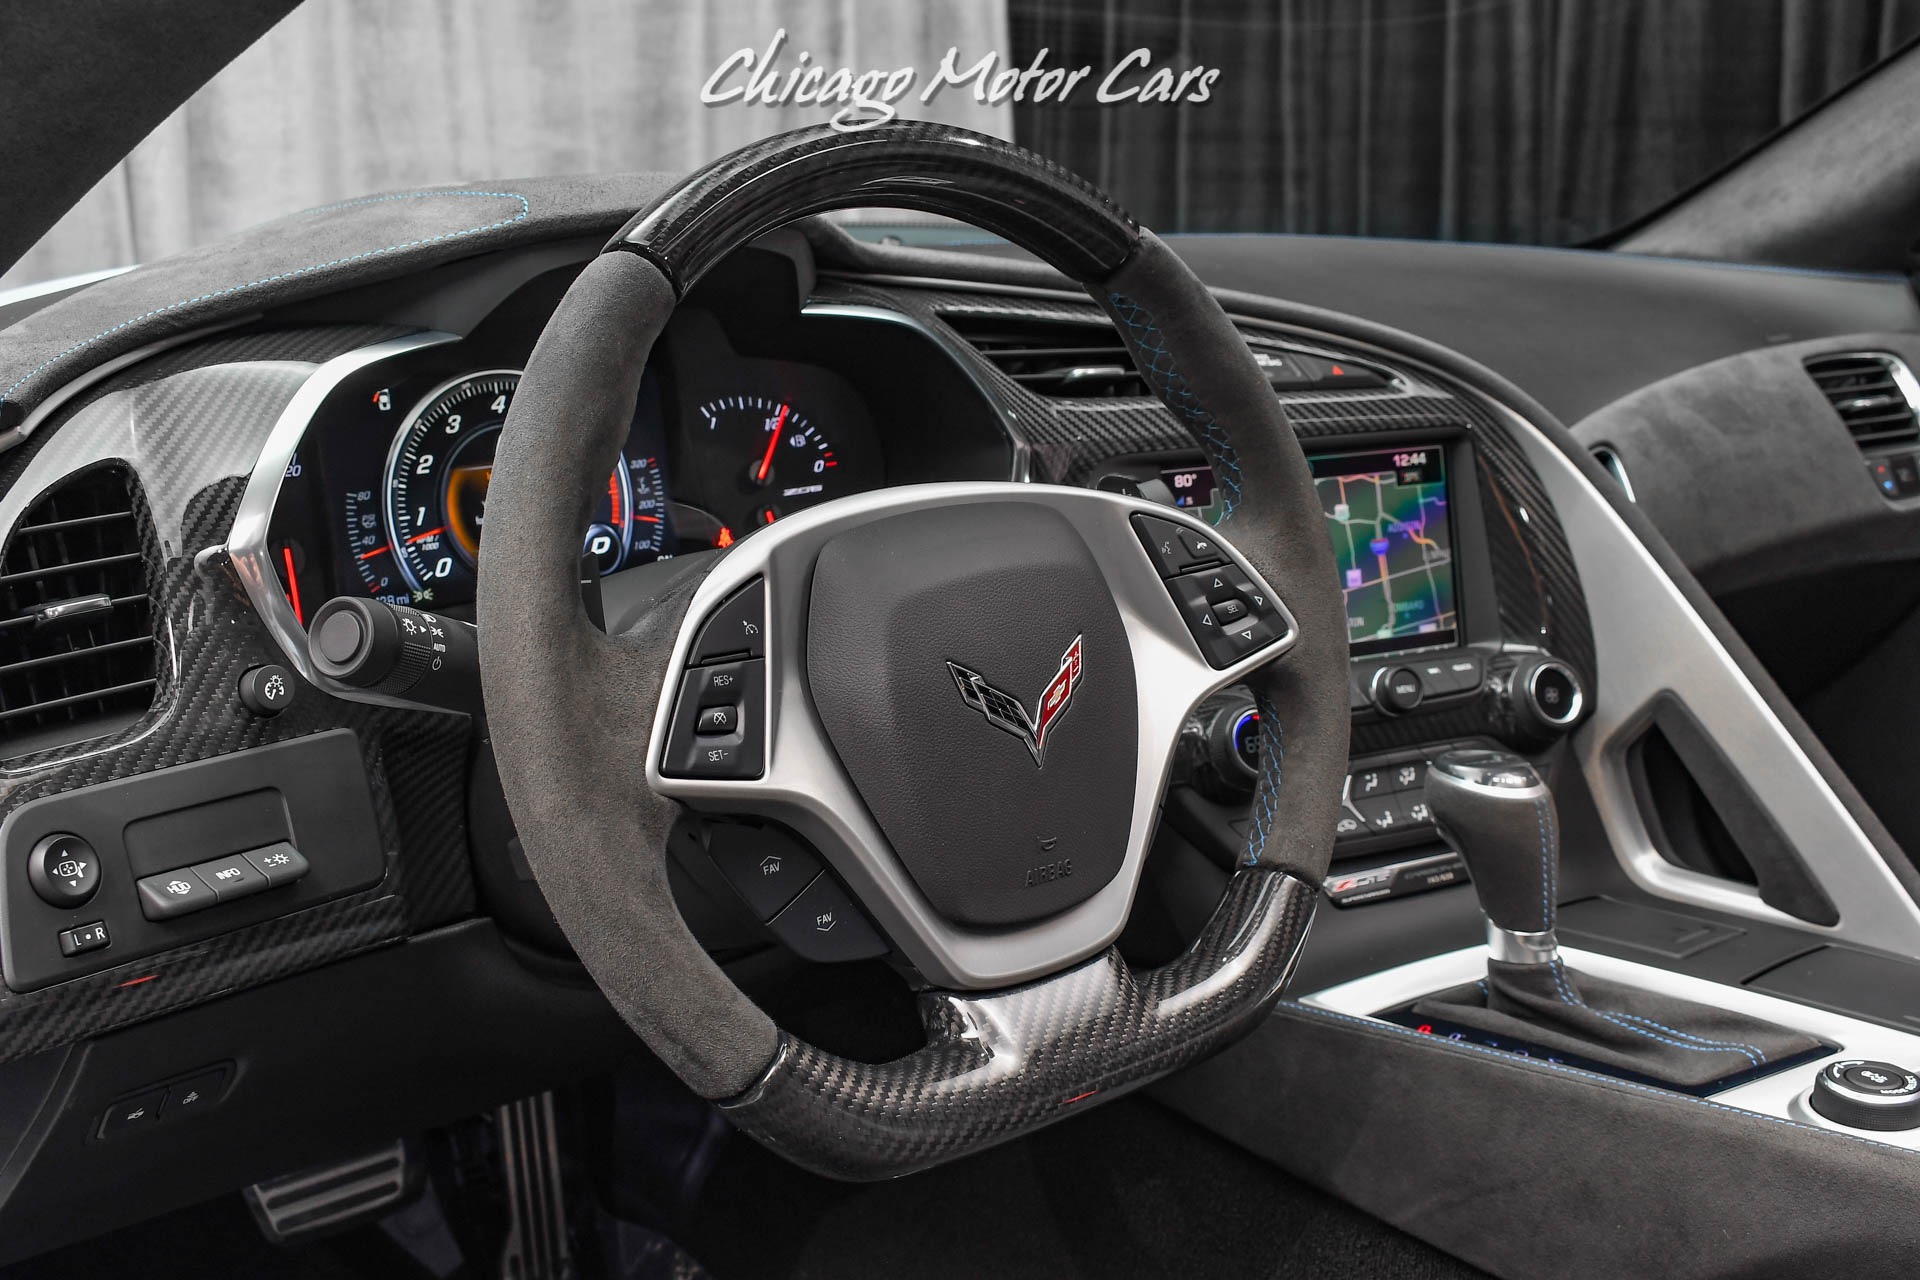 Used-2018-Chevrolet-Corvette-Z06-Carbon-65-edition-Coupe-Only-2400-Miles-COLLECTOR-QUALITY